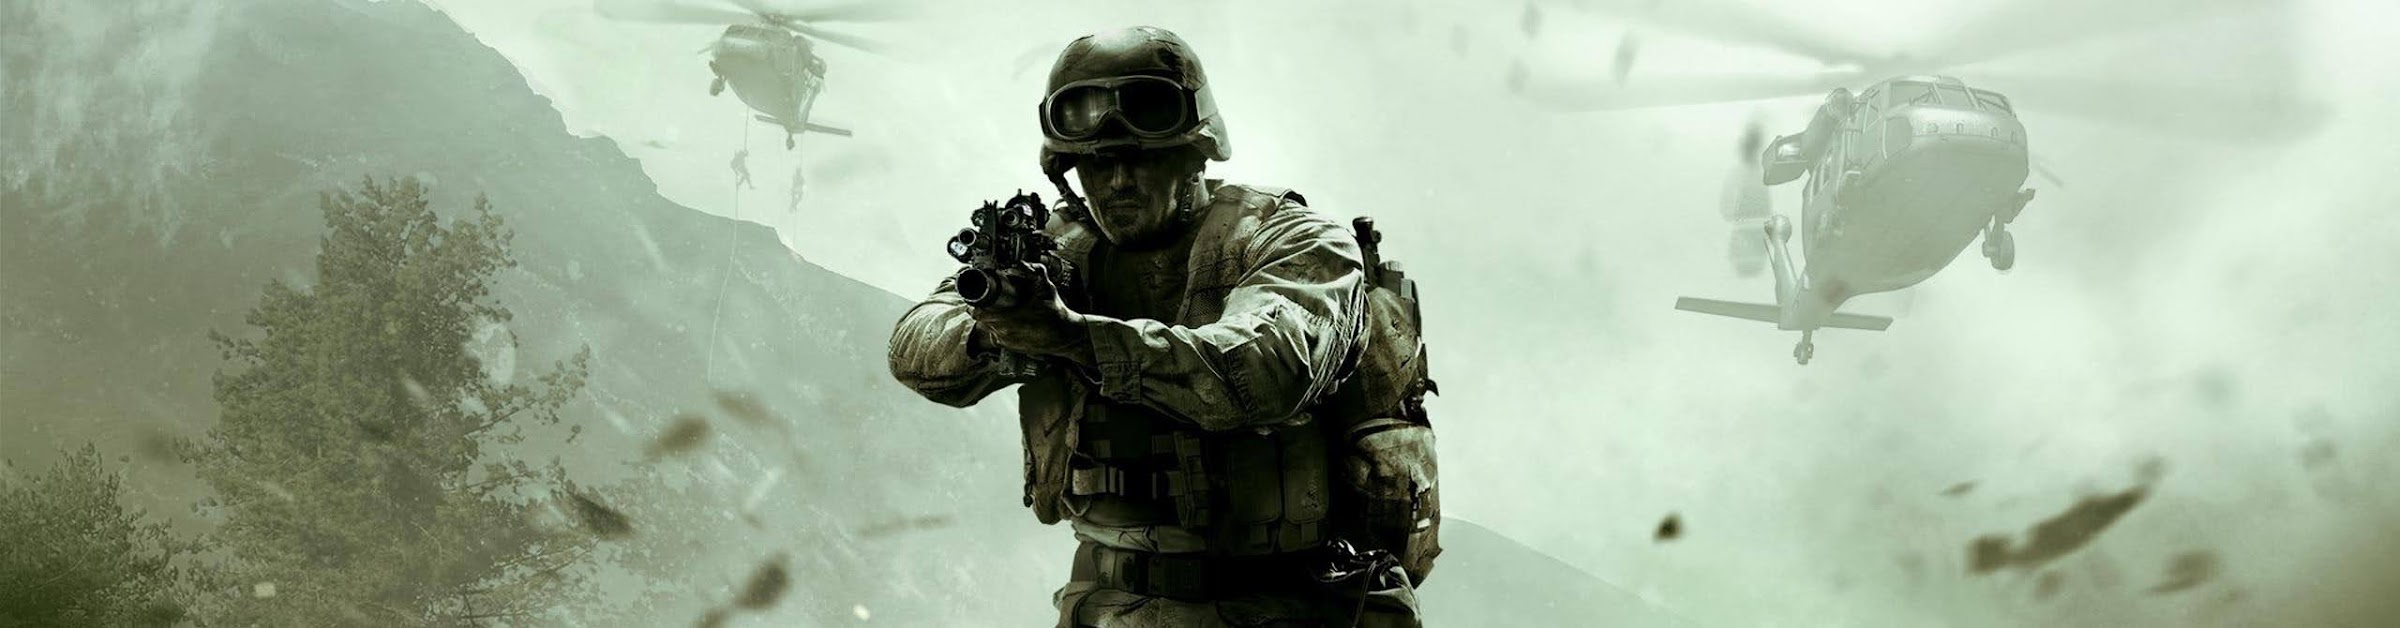 Call of Duty 4 Modern Warfare Việt Ngữ